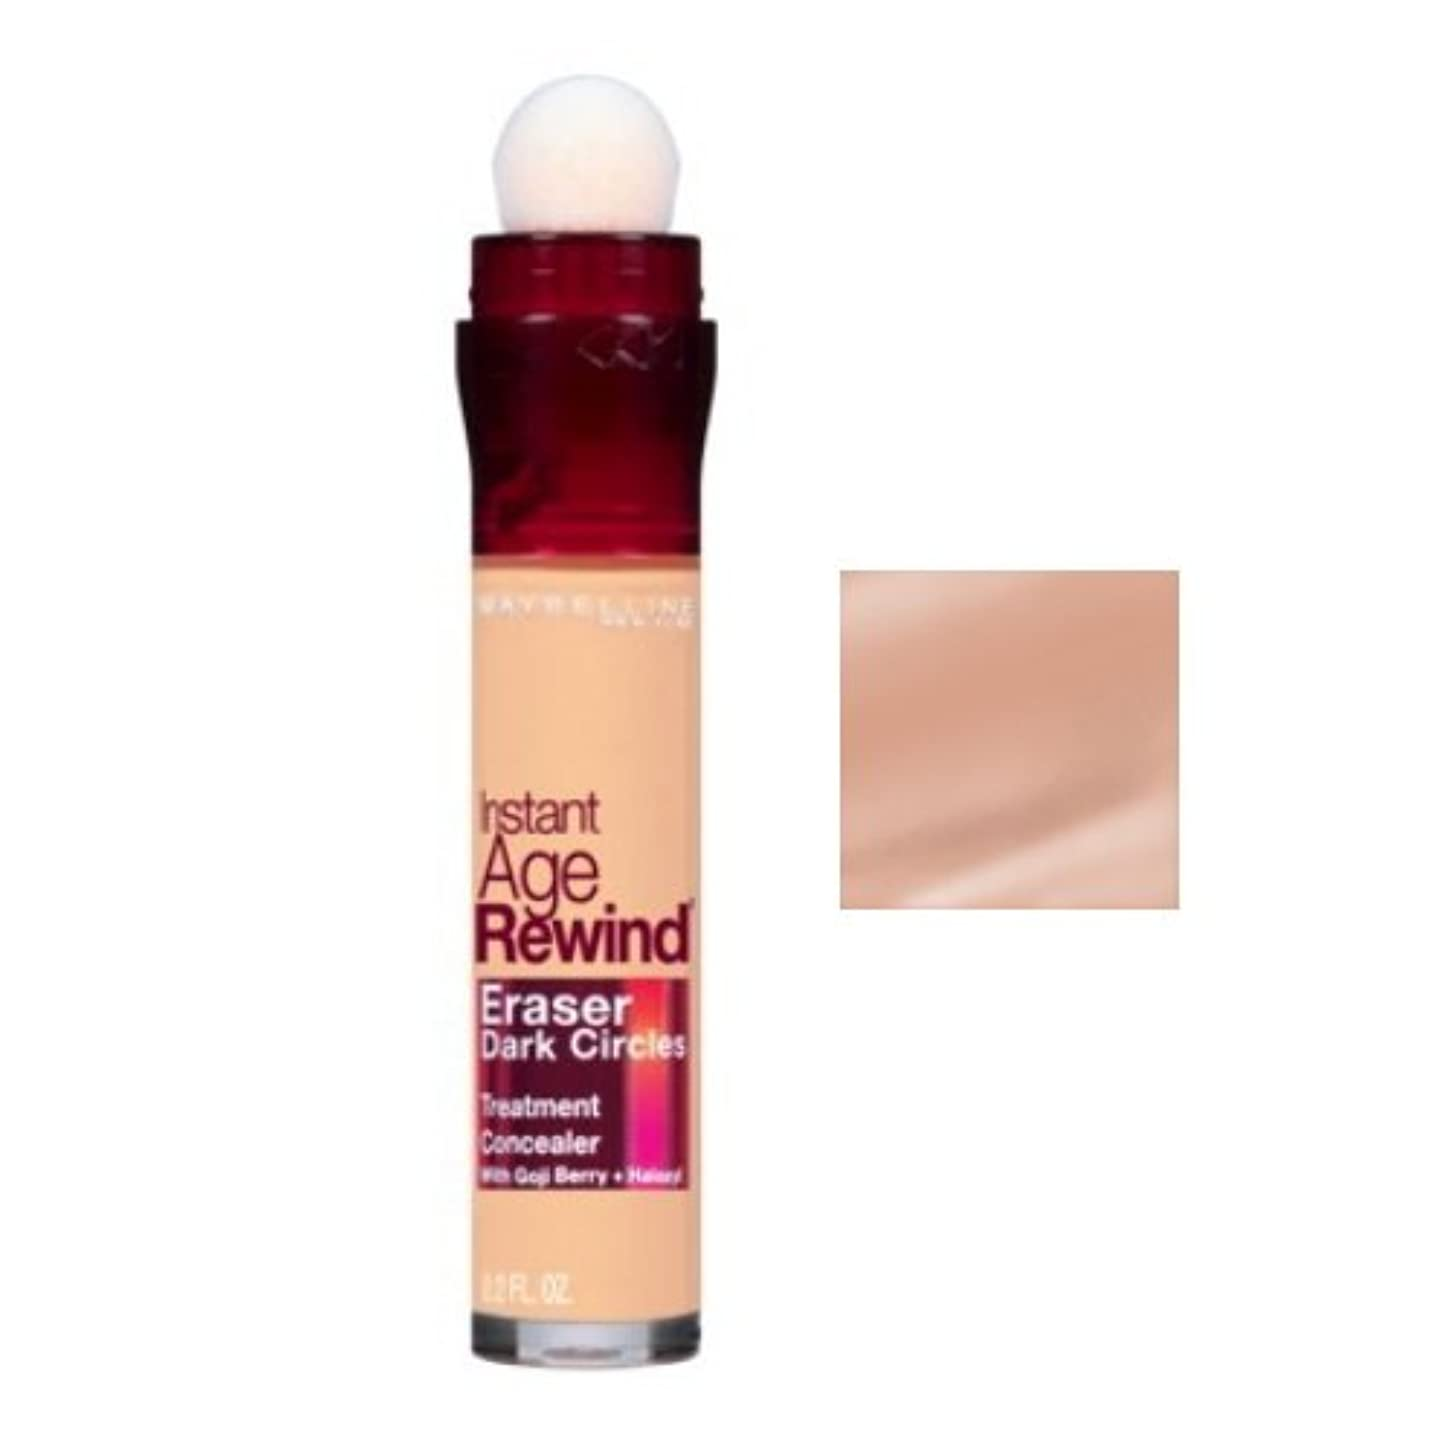 オズワルドアンペアお尻MAYBELLINE Instant Age Rewind Eraser Dark Circles + Treatment - Honey (並行輸入品)